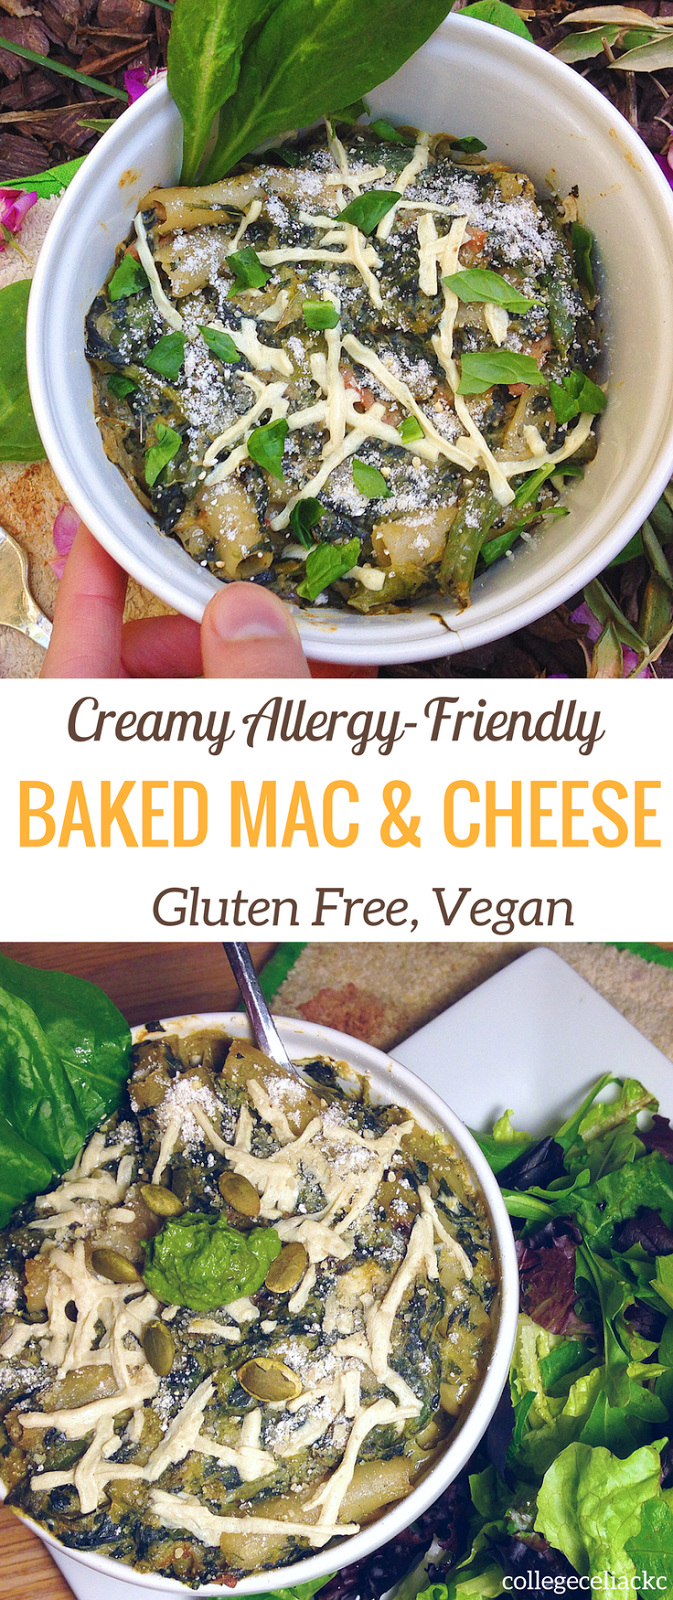 Creamy Gluten Free and Vegan Baked Mac and Cheese